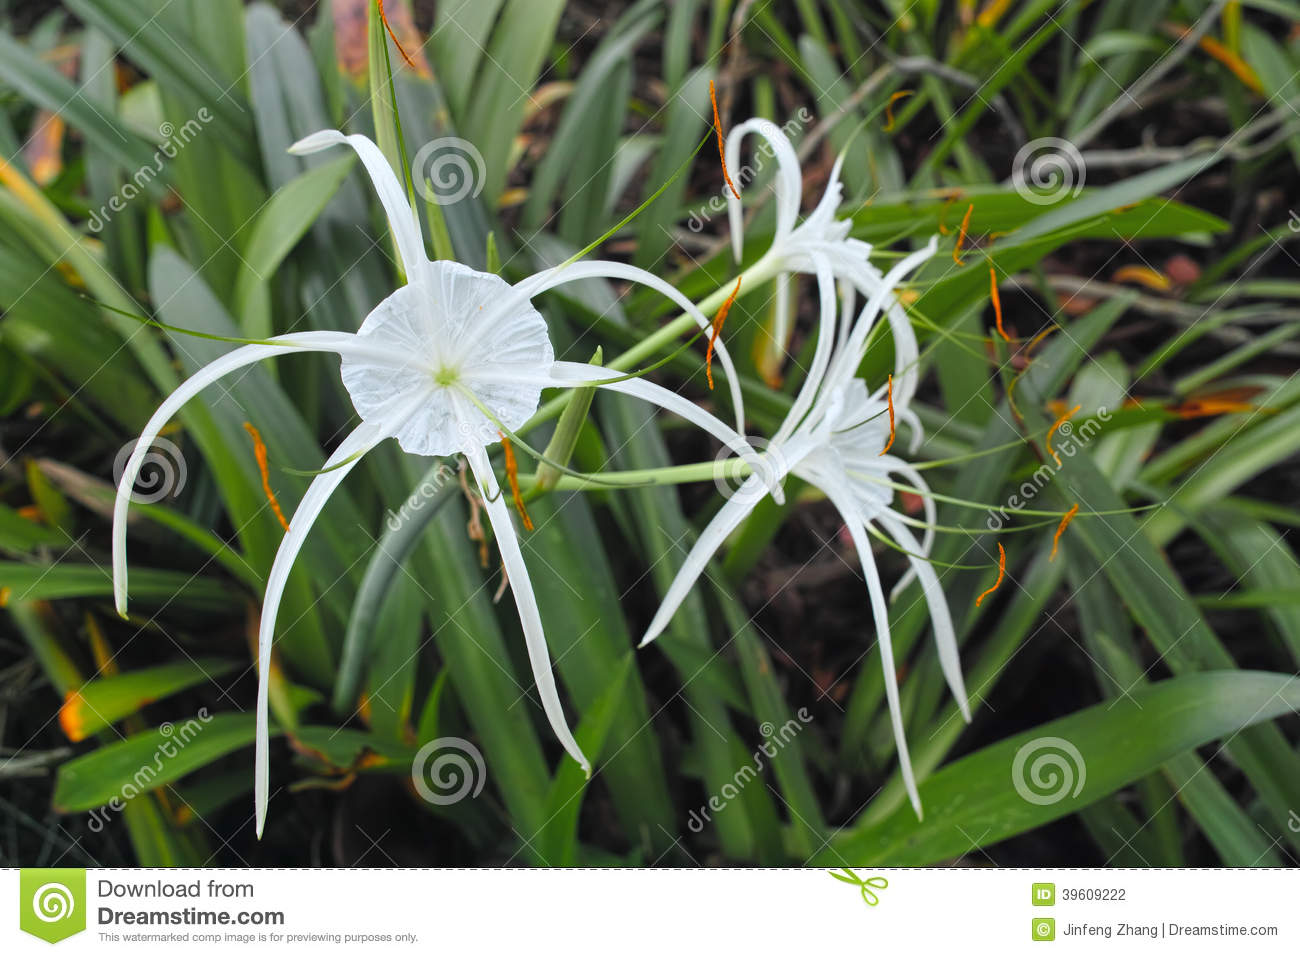 Spider lily flower stock photo image of tropics tropic 39609222 download spider lily flower stock photo image of tropics tropic 39609222 izmirmasajfo